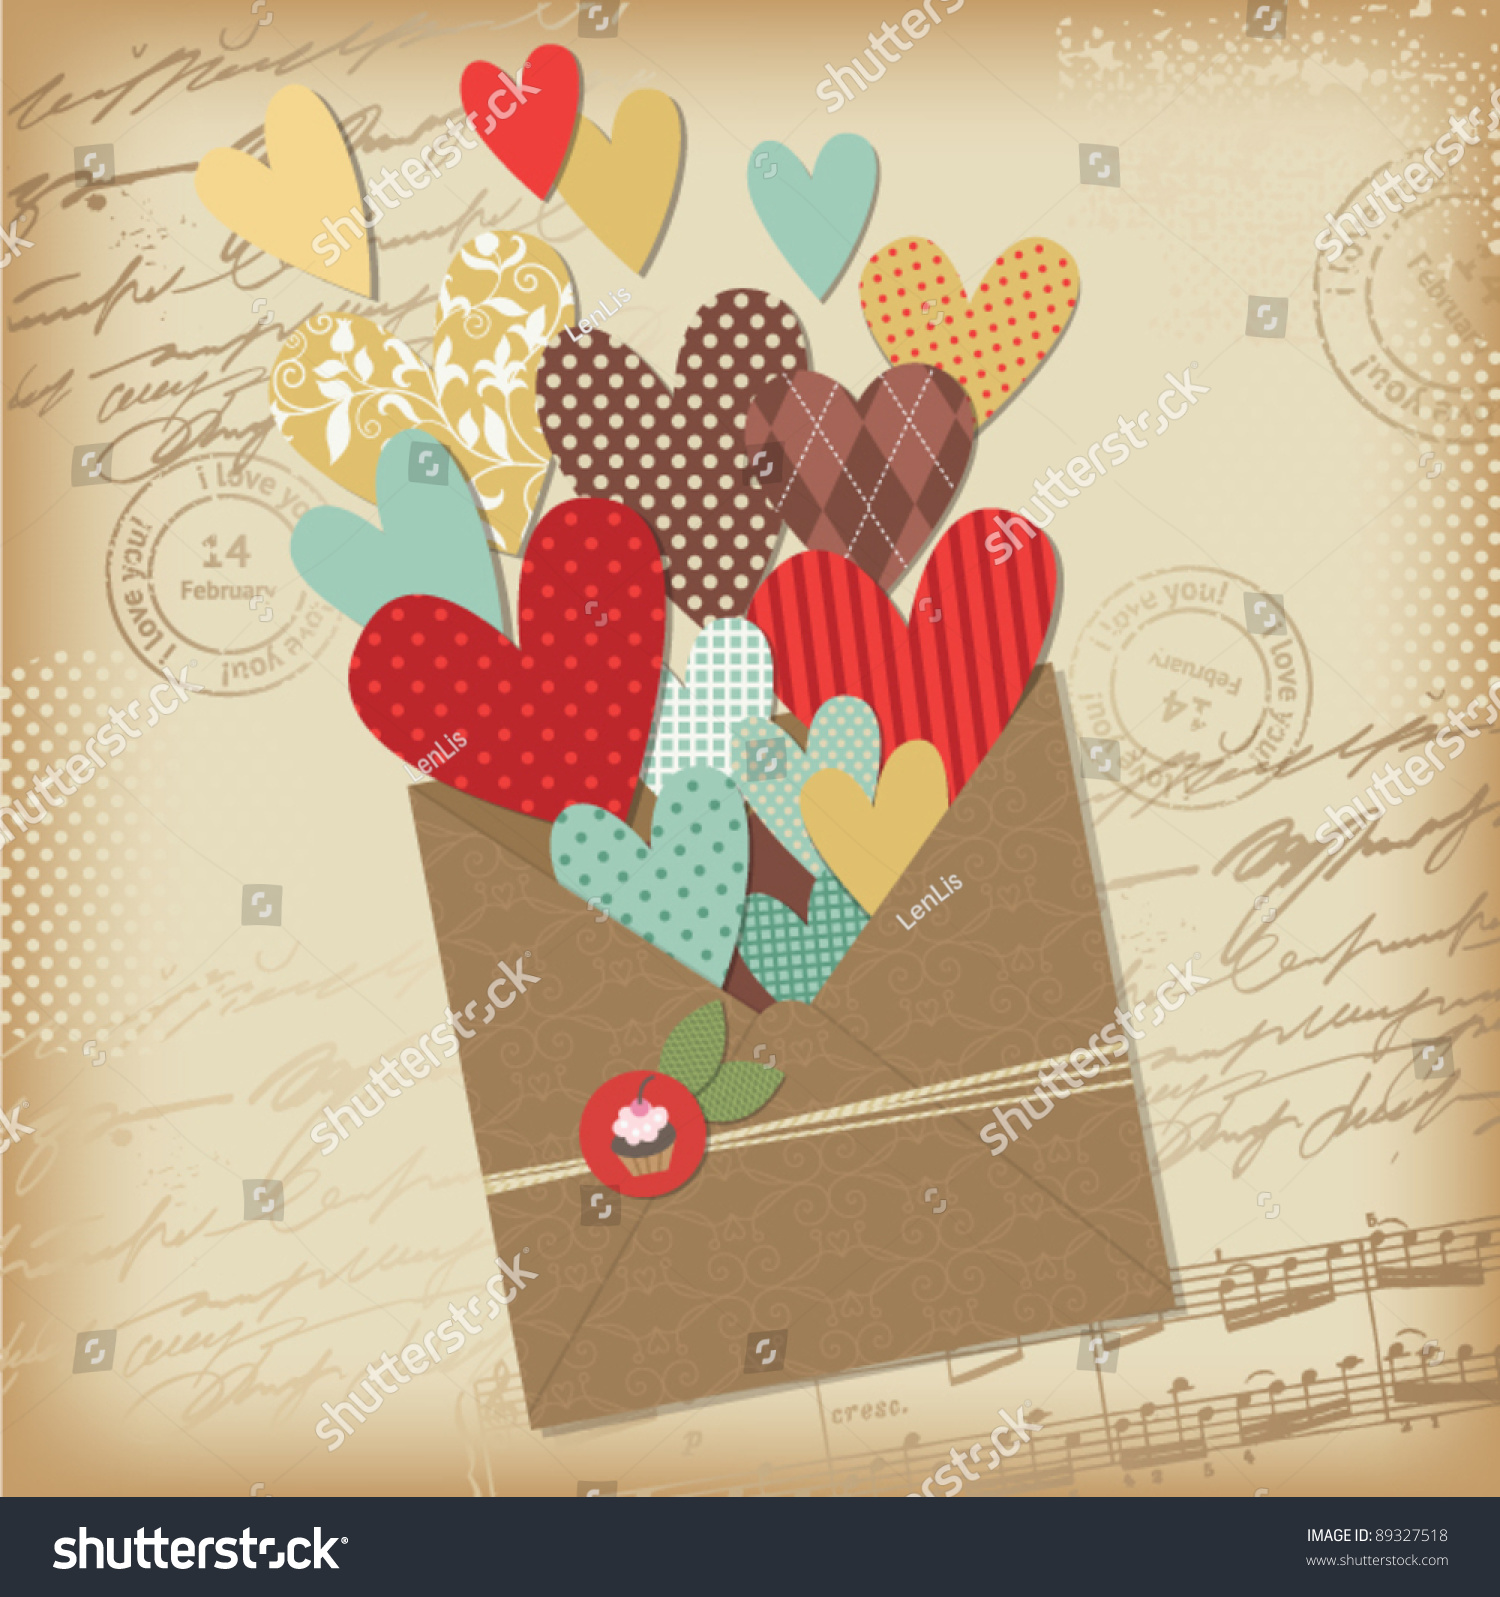 How to scrapbook greeting cards - Retro Scrapbooking Elements Valentine Card